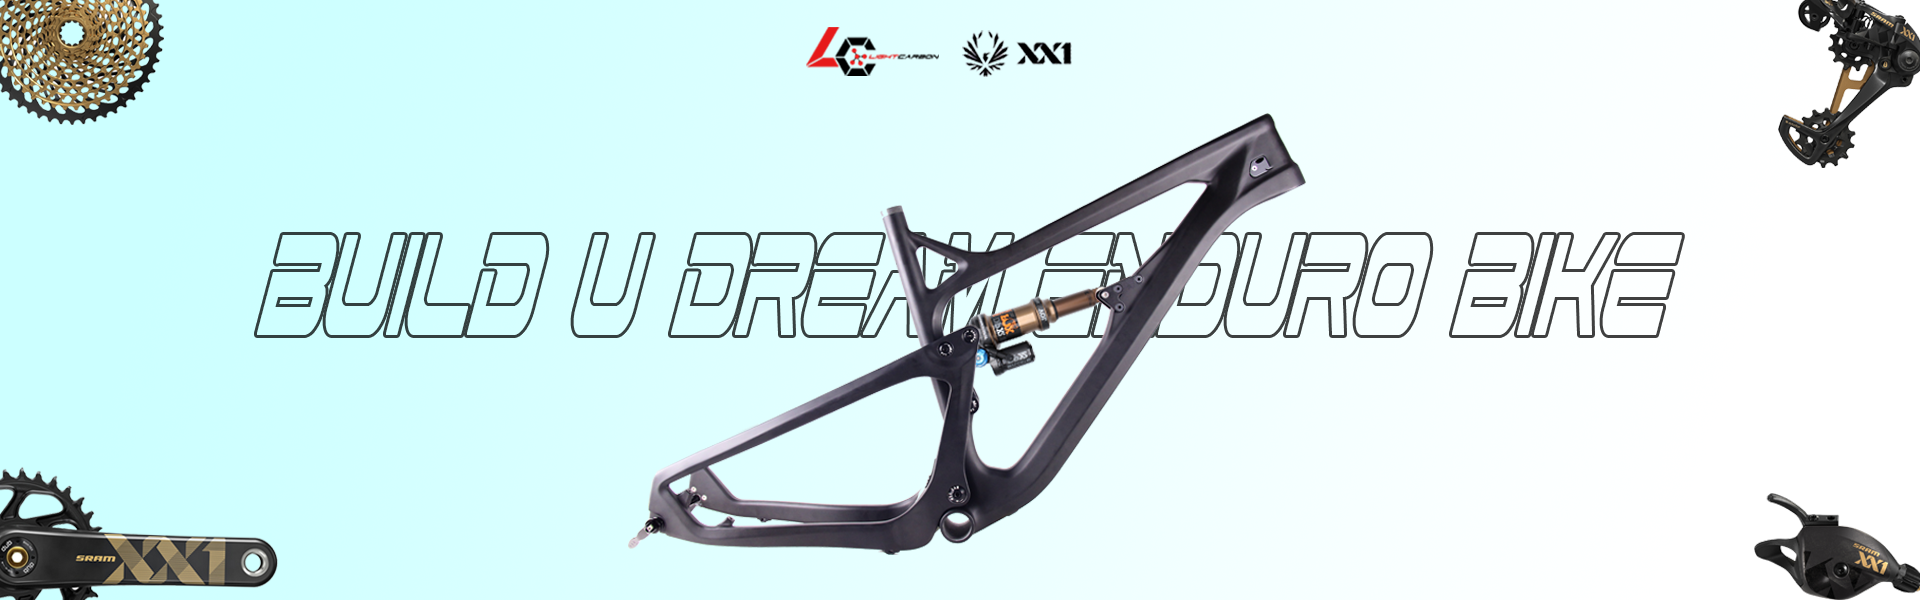 2019 vpp3 new Enduro all mountain bike frameset